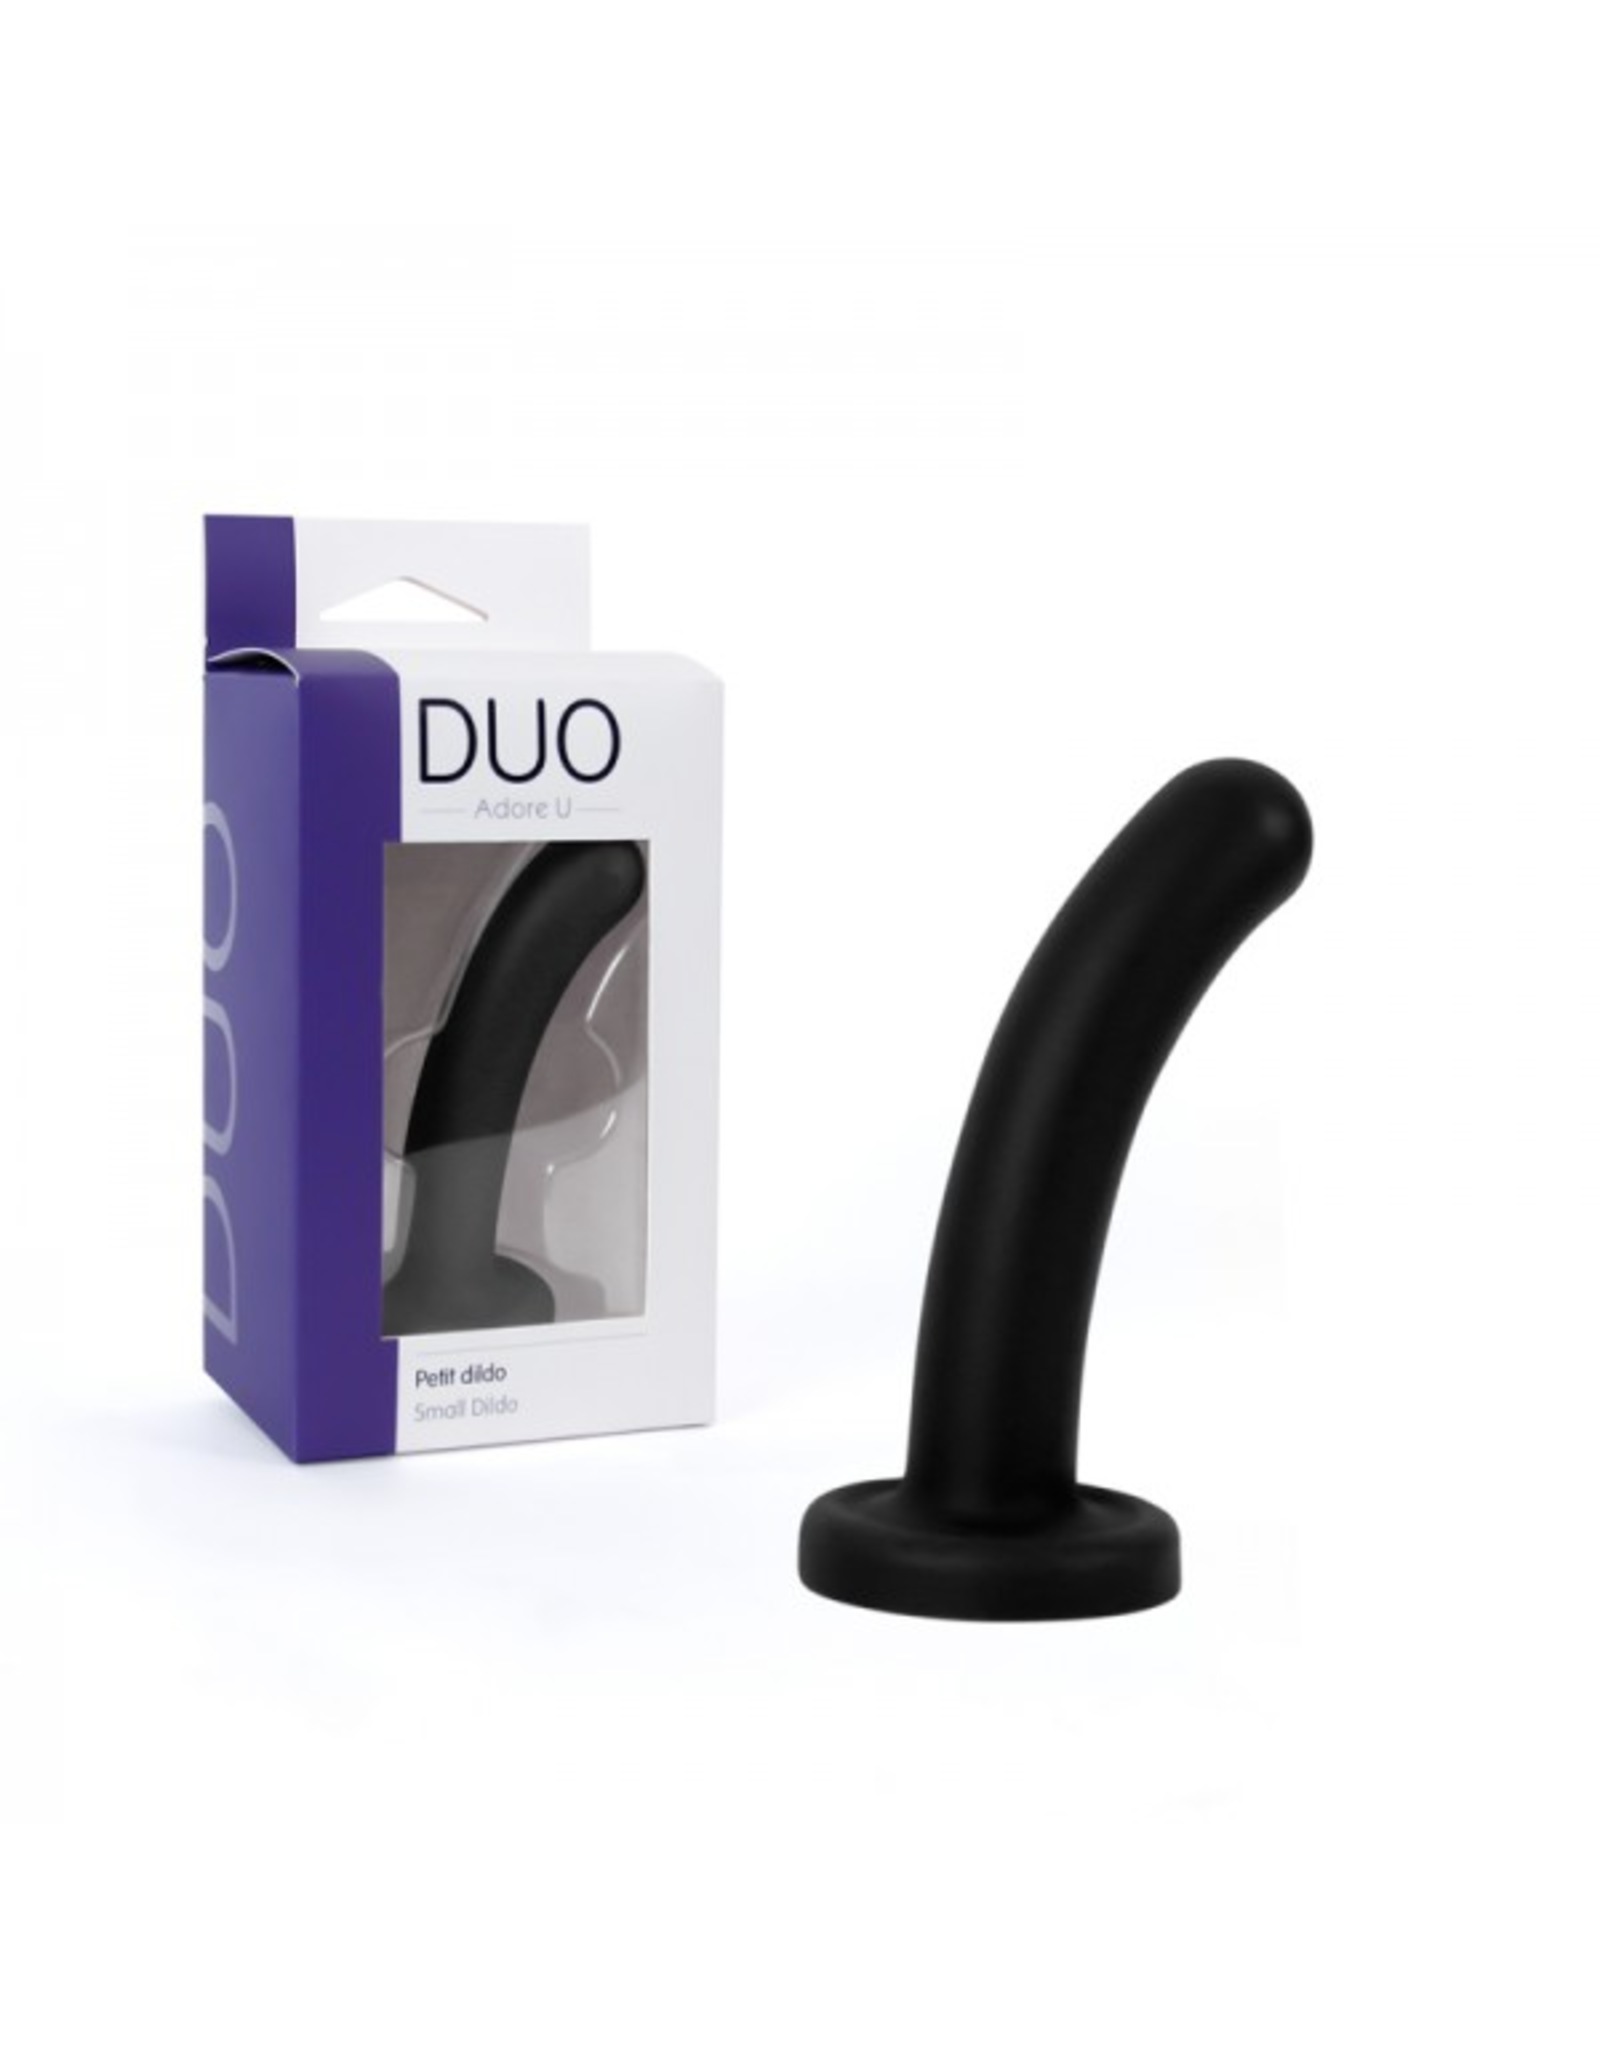 ADORE U - DUO - SMALL DILDO - BLACK